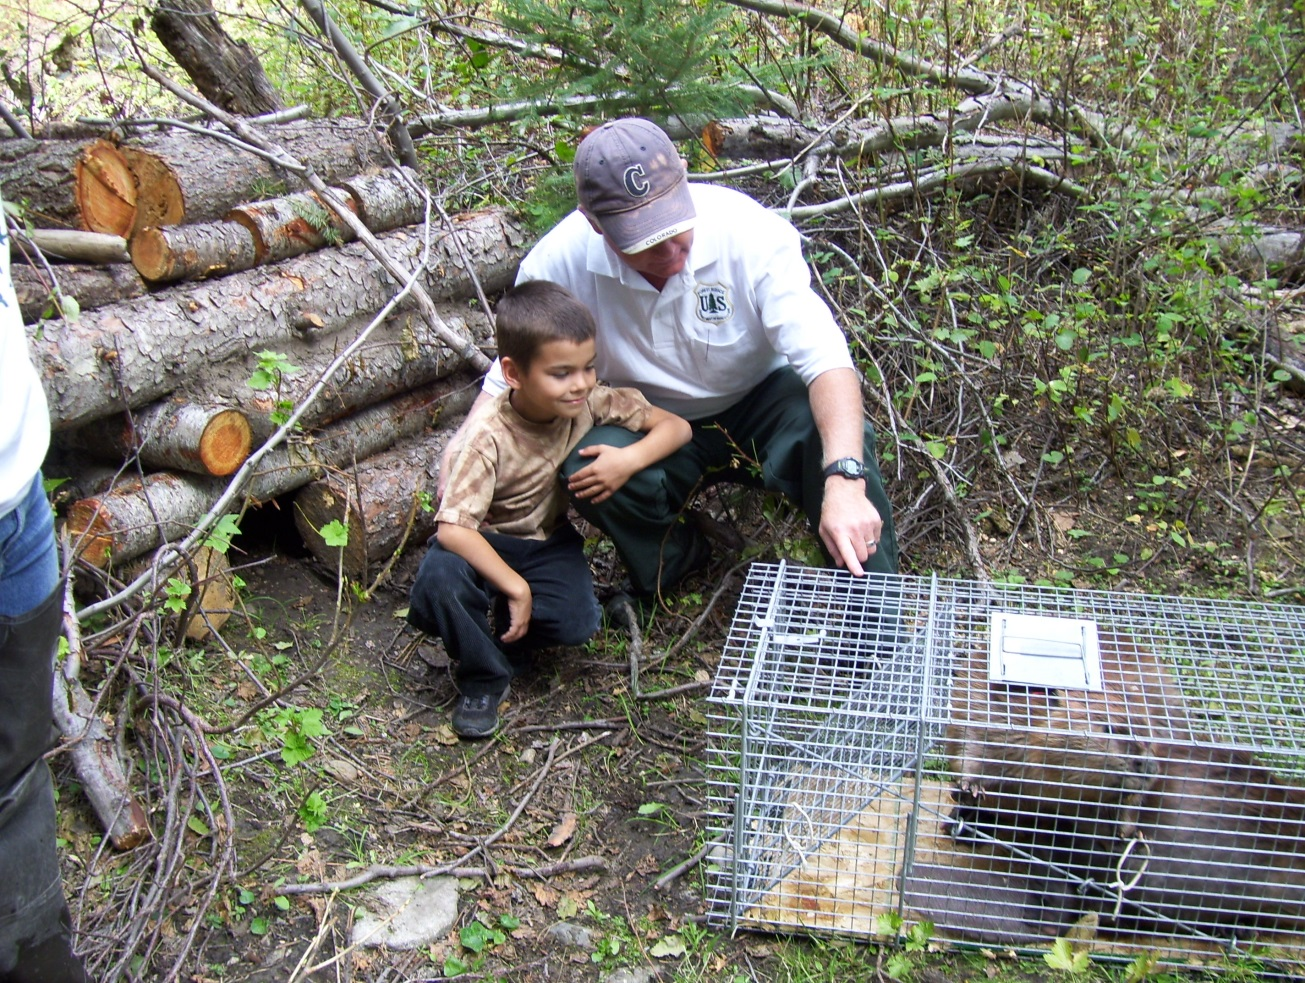 Kent Woodruff, U.S. Forest Service biologist, introduces a local resident named David to a soon-to-be-new-resident beaver as part of one of the project's education programs. (USFS Photo)